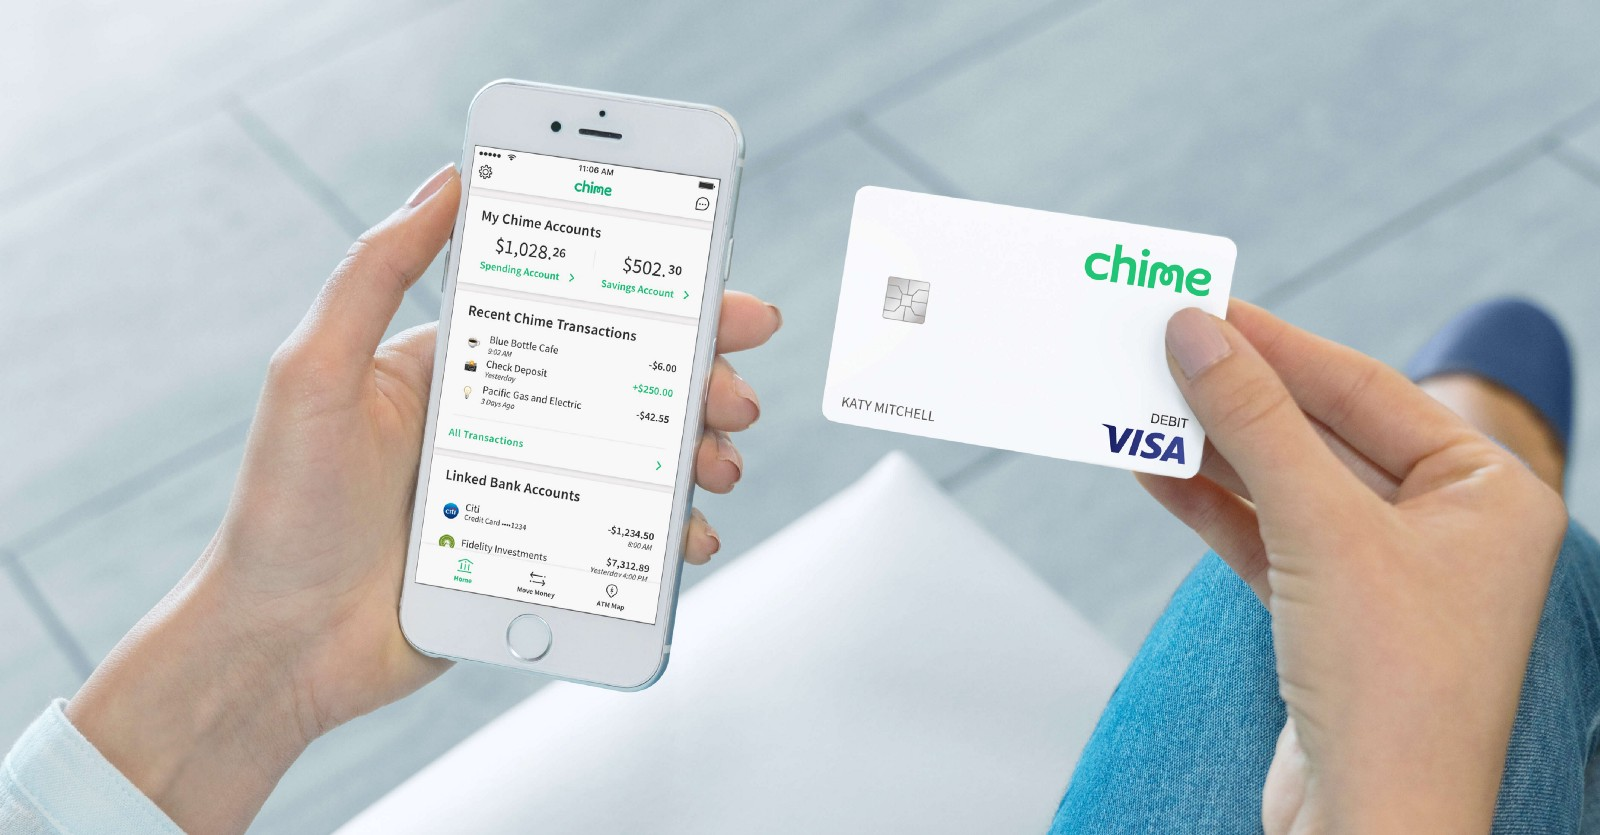 Cheers to Chime: Finally, a Bank Consumers Can Love!